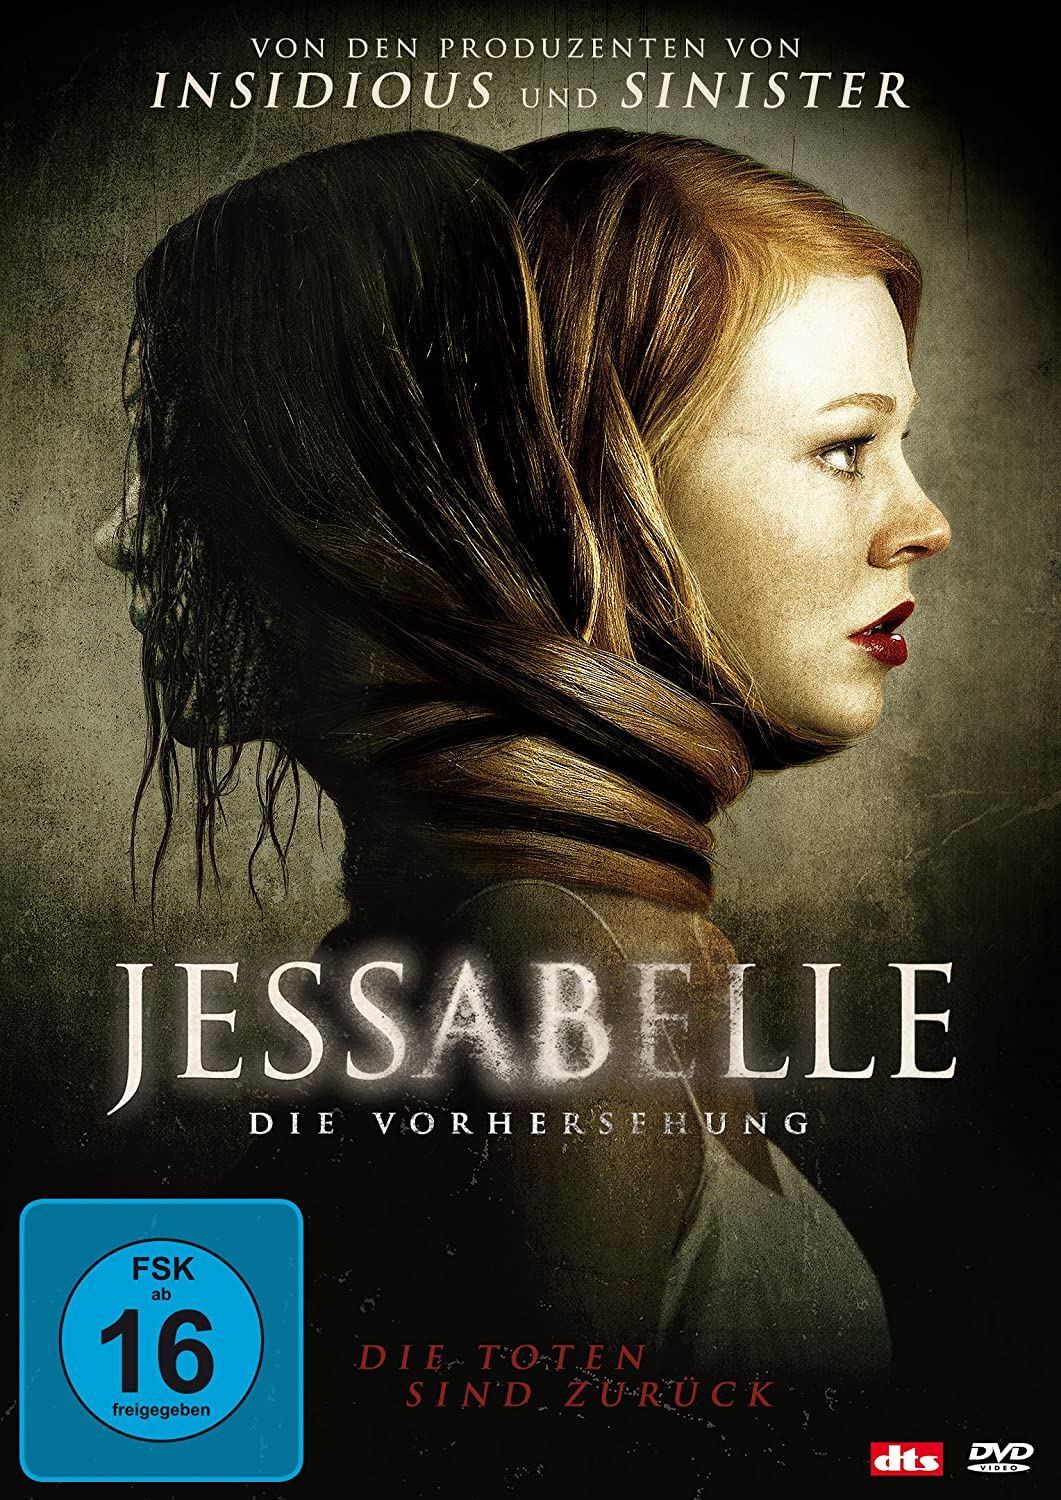 Jessabelle - Die Vorhersehung: Amazon.de: Sarah Snook, Mark Webber ...